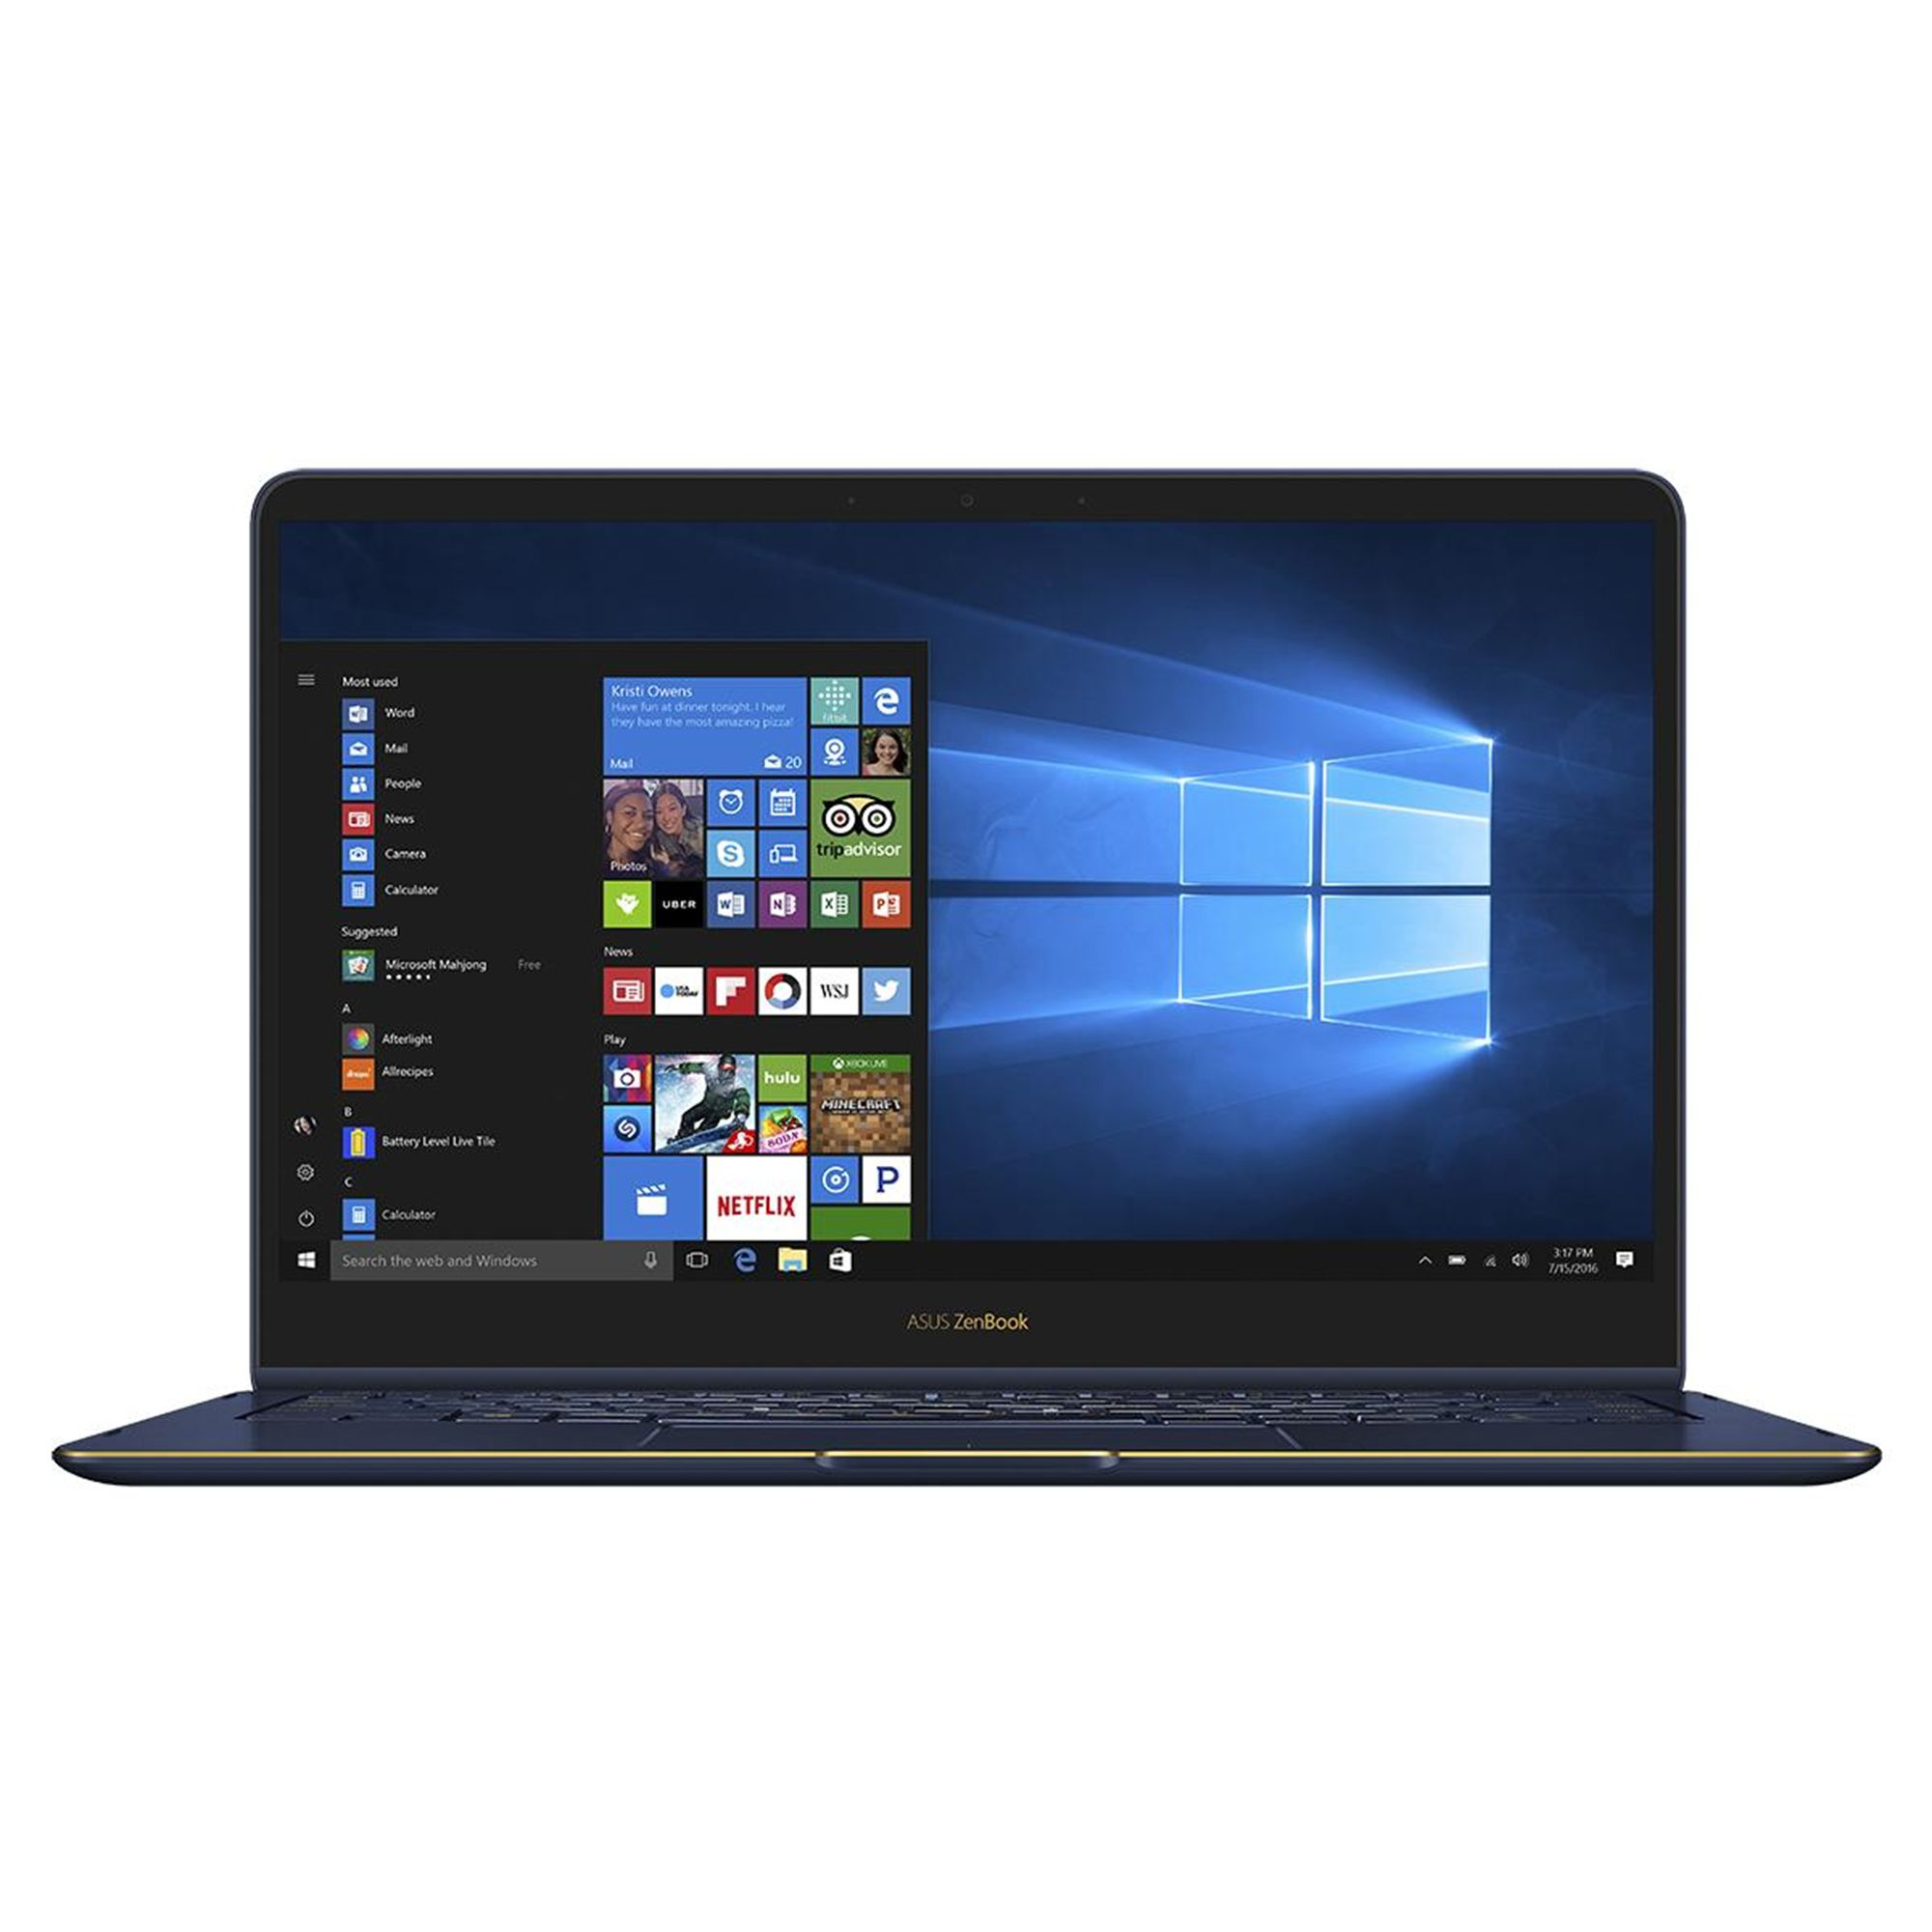 Ultrabook Asus ZenBook Flip S UX370UA 13.3 Full HD Touch Intel Core i7-8550U RAM 16GB SSD 256GB Windows 10 Home Albastru